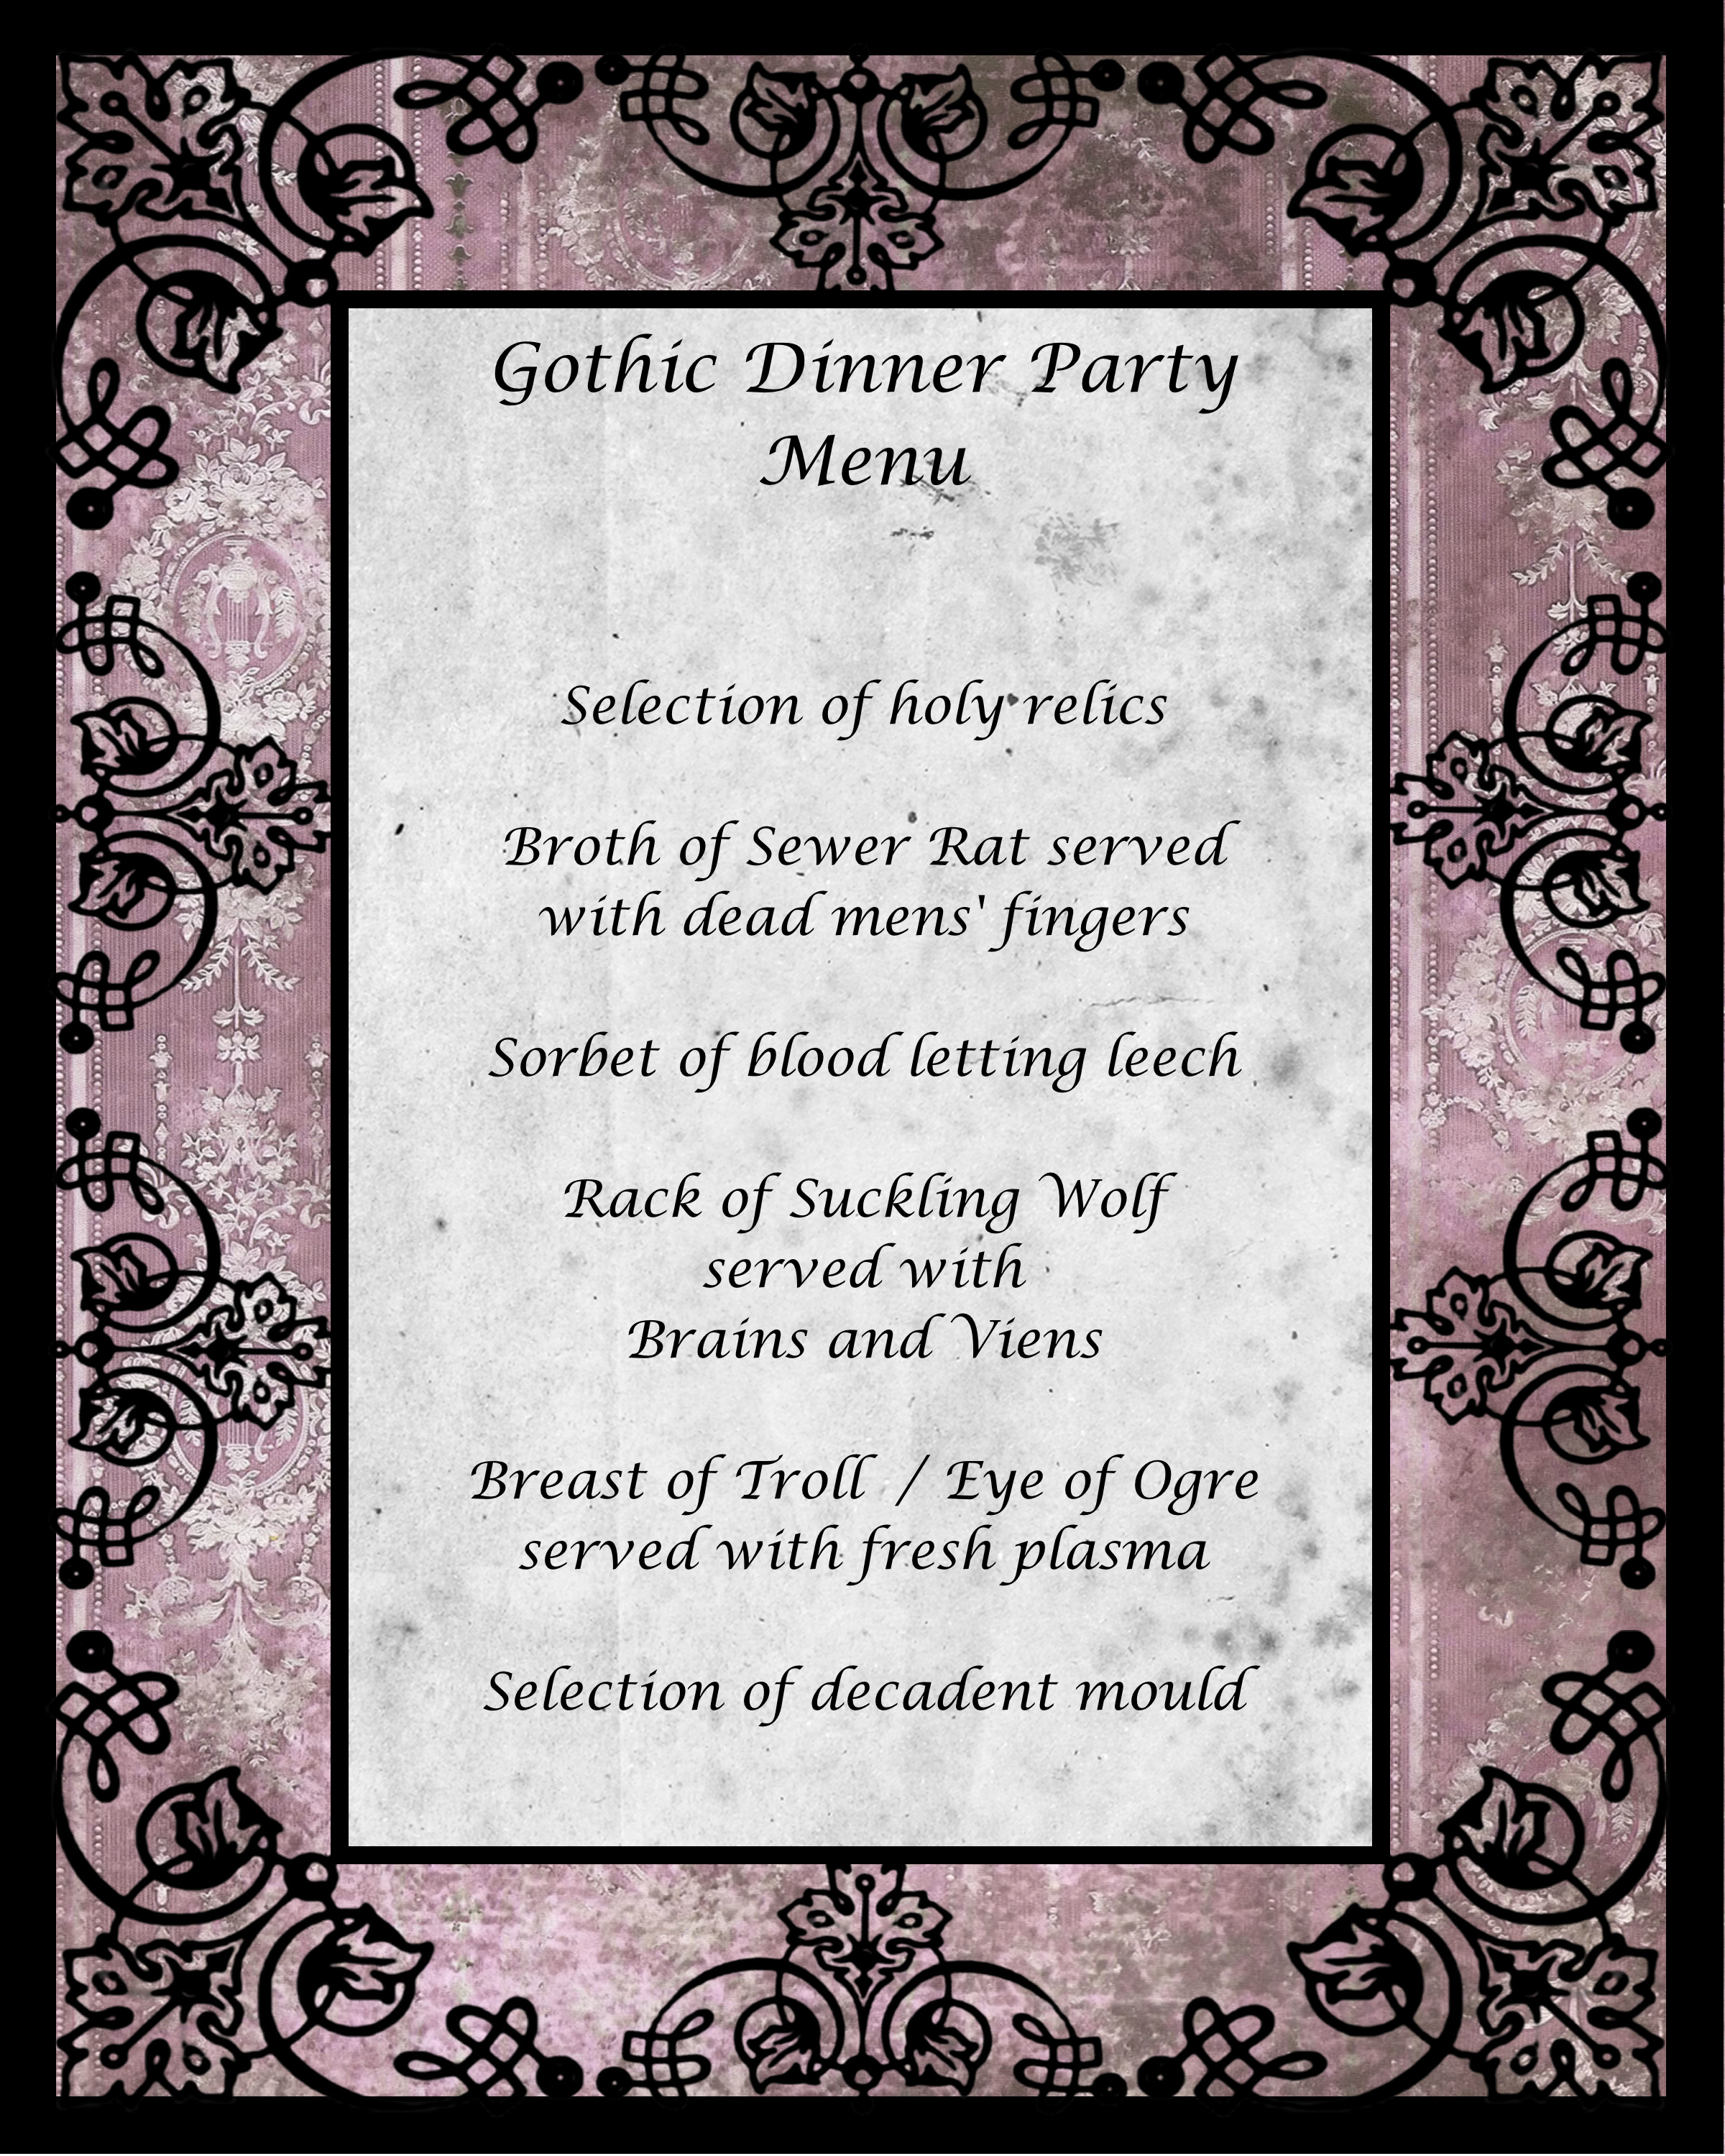 Gothic Dinner Party Menu